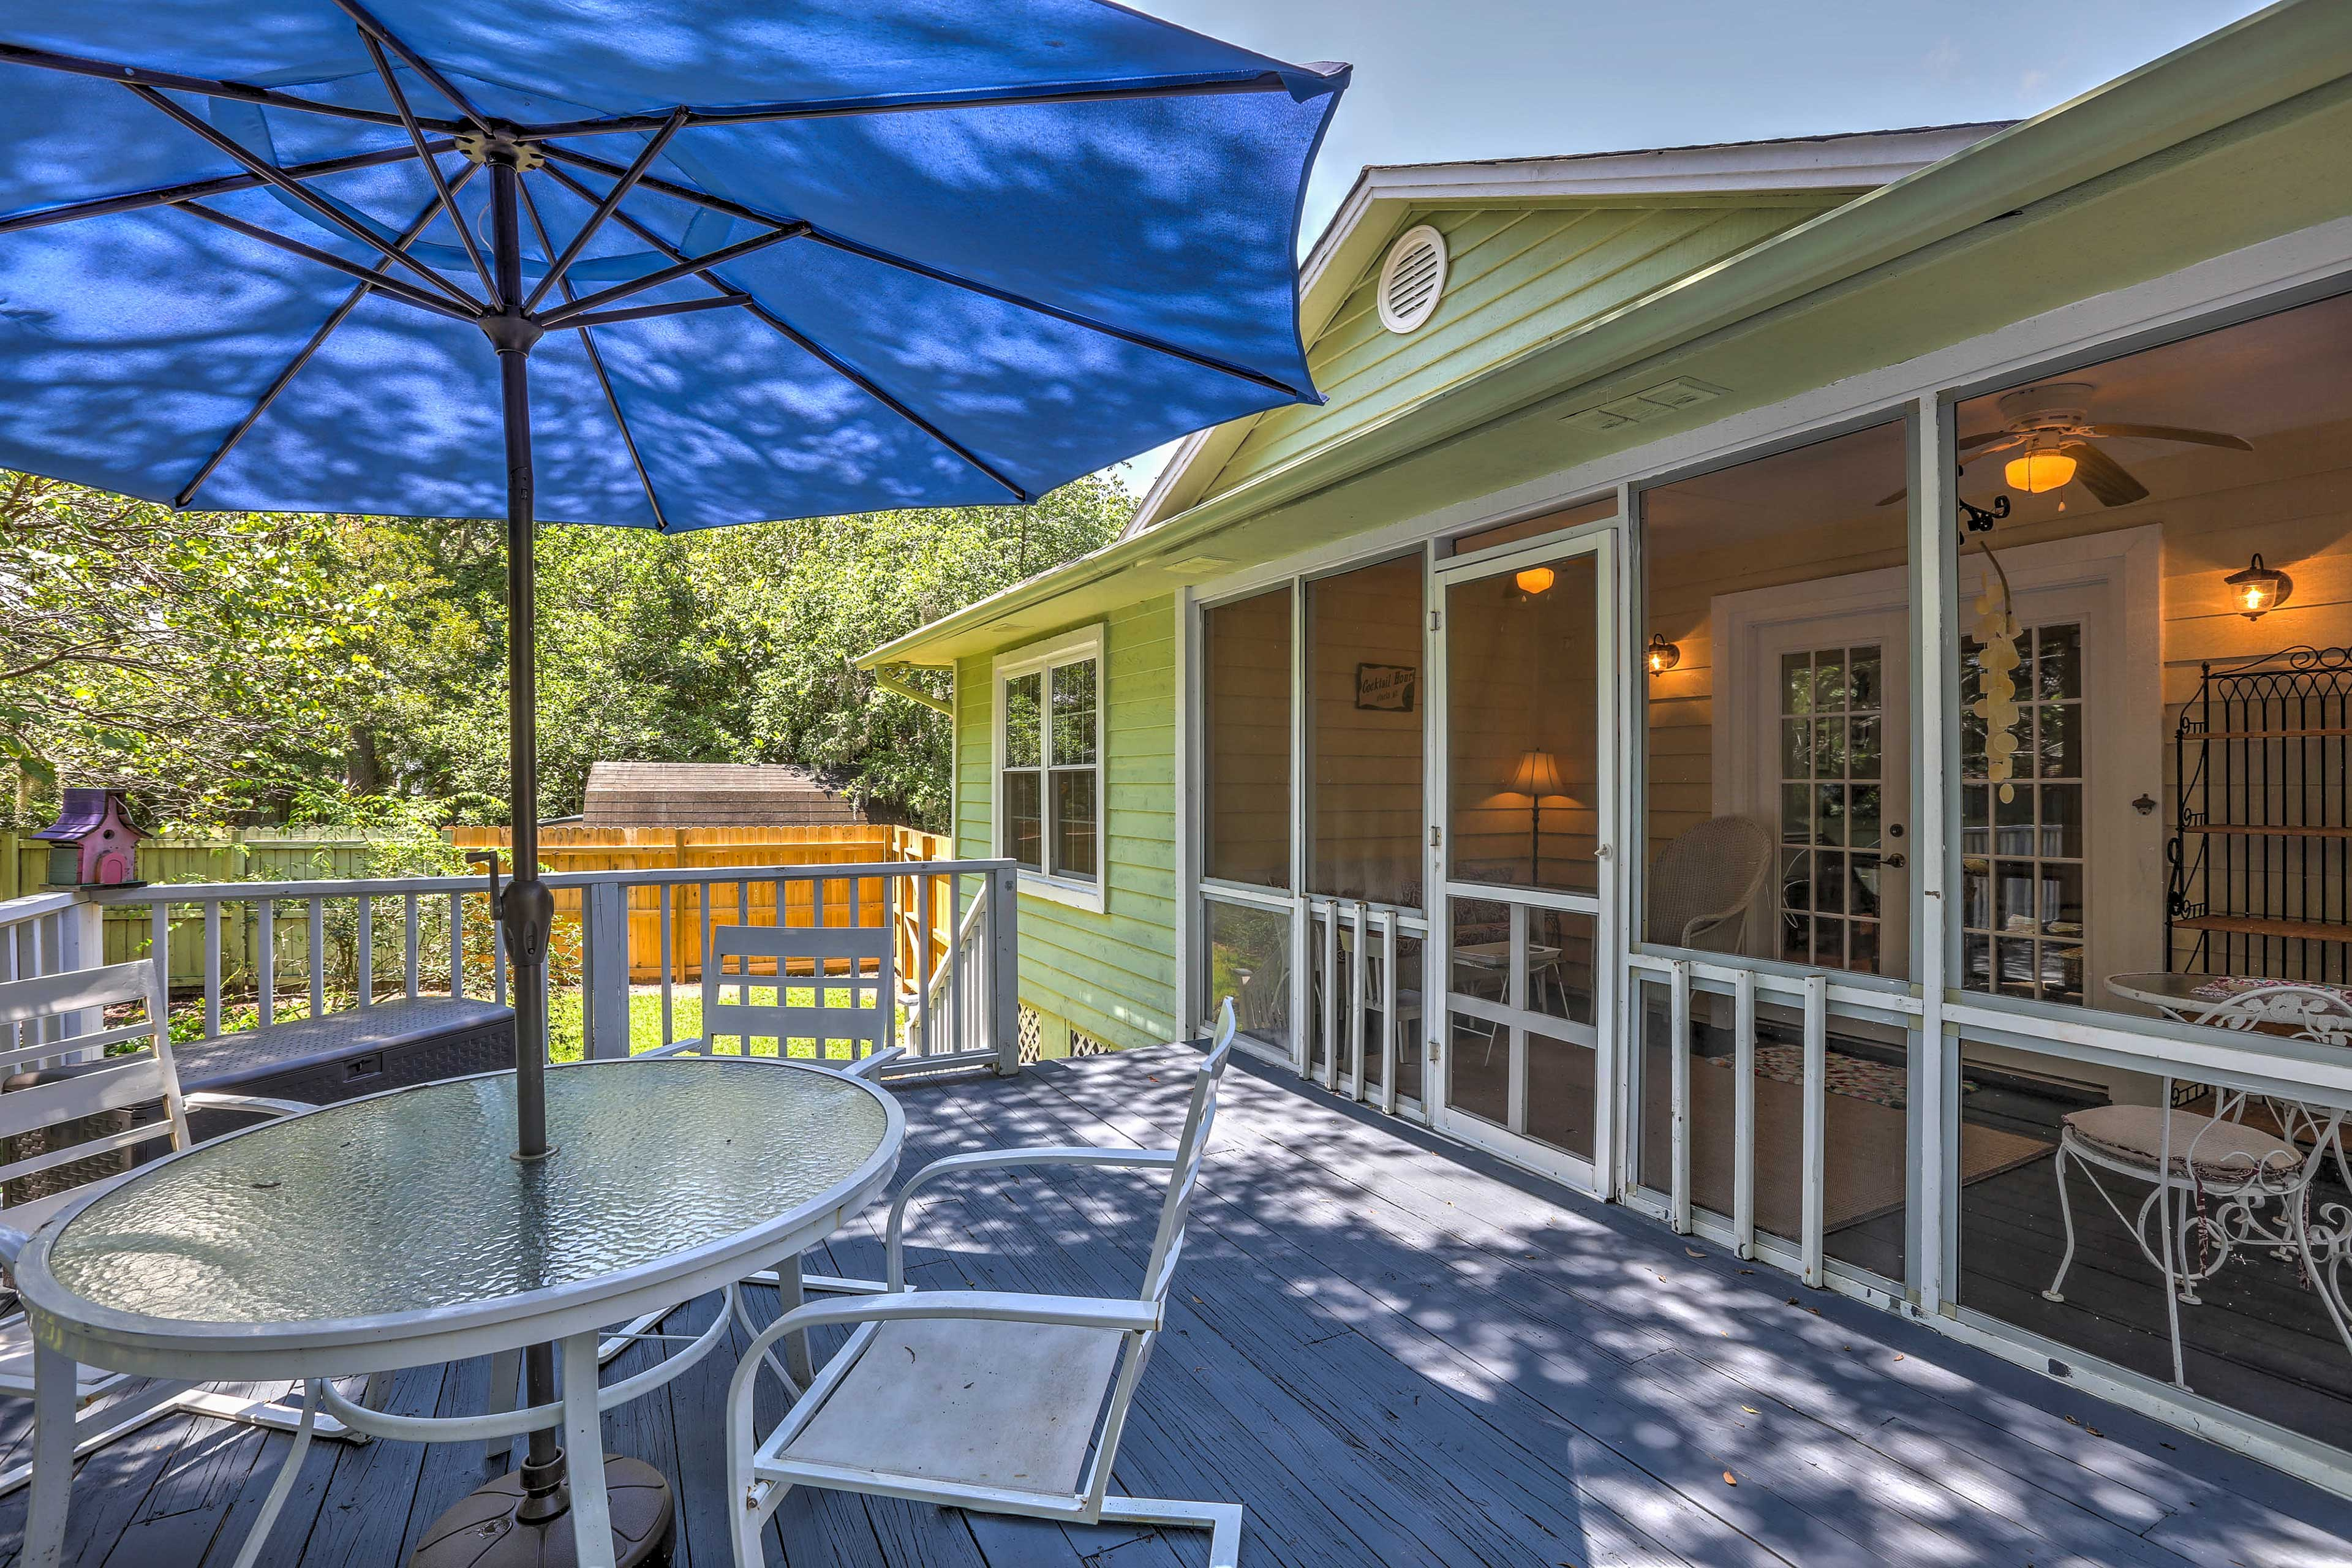 Step out to your private deck to dine al fresco underneath the shade umbrella.